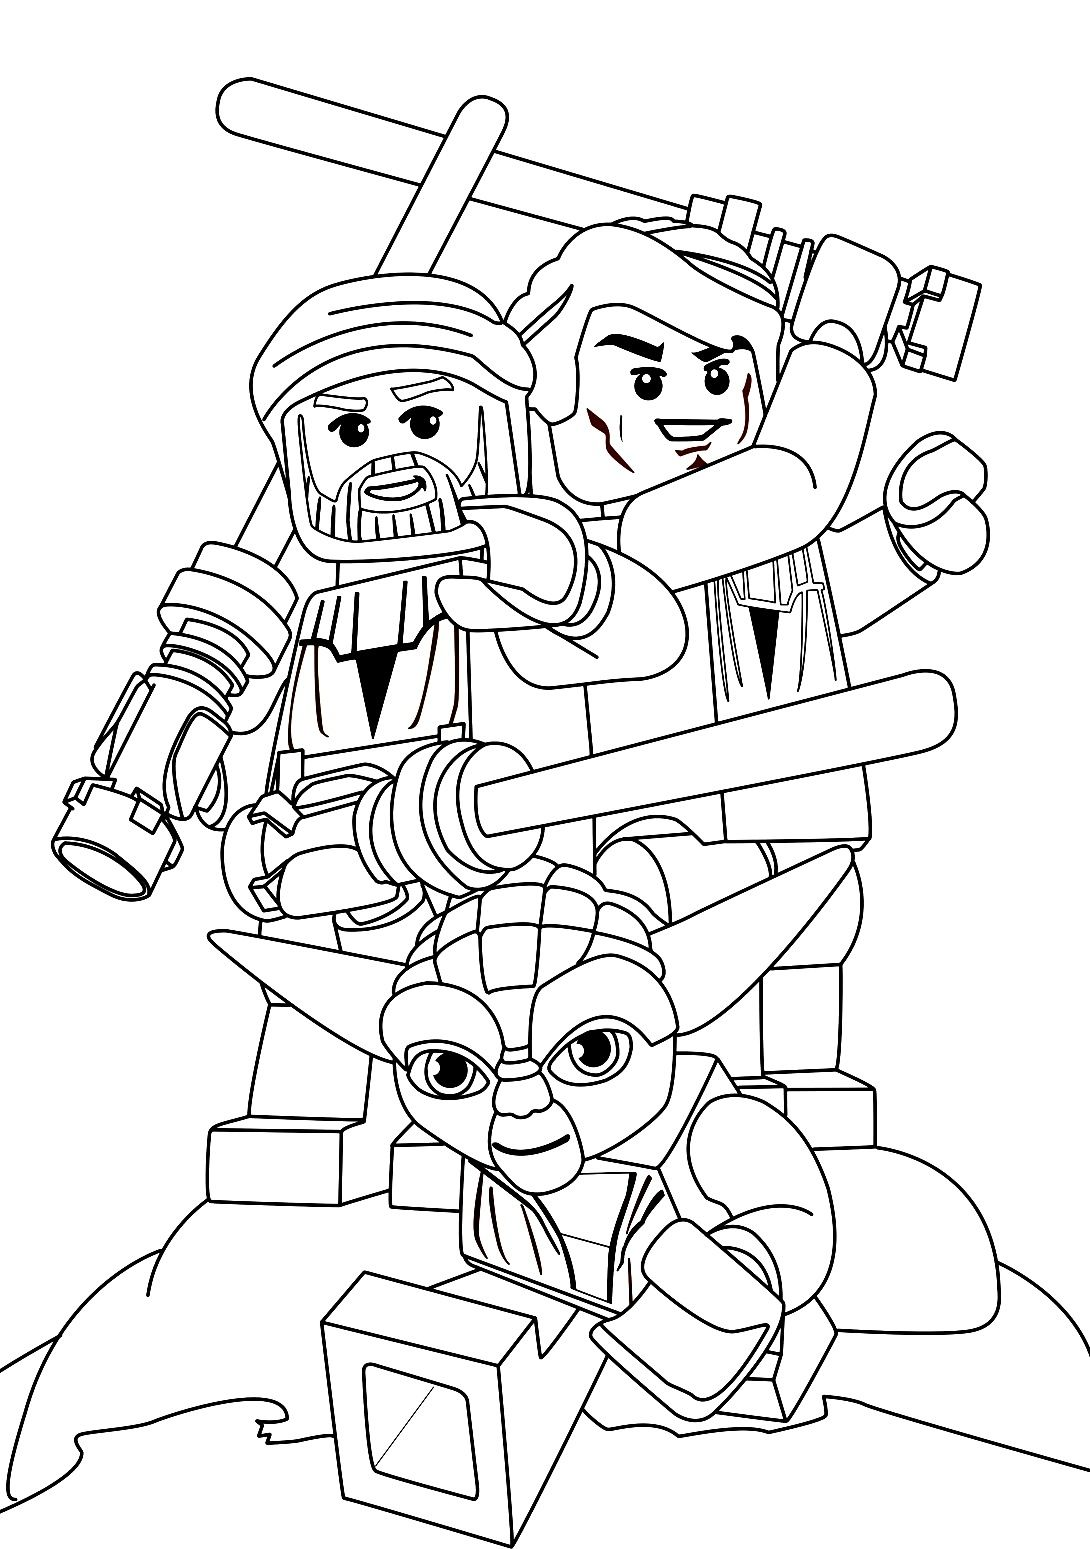 lego star wars coloring pages - Star Wars Coloring Books